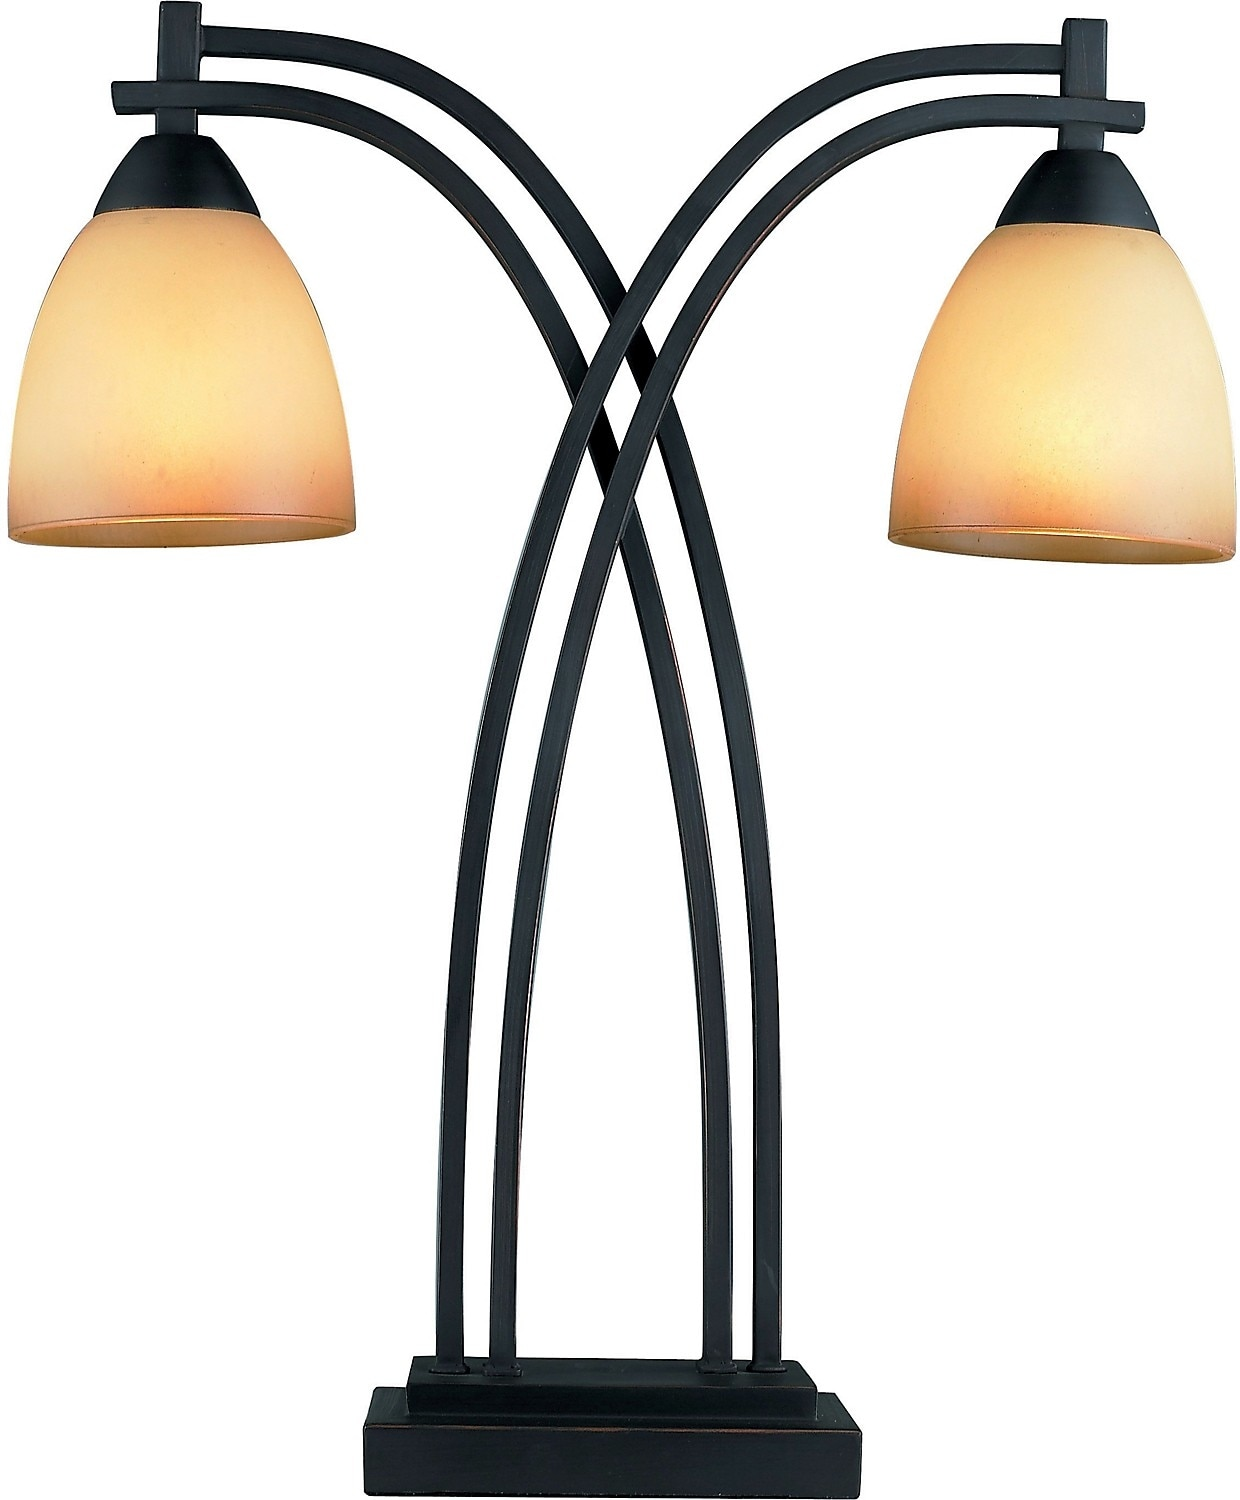 Home Accessories - Street Light 2-Light Table Lamp with Glass Shade